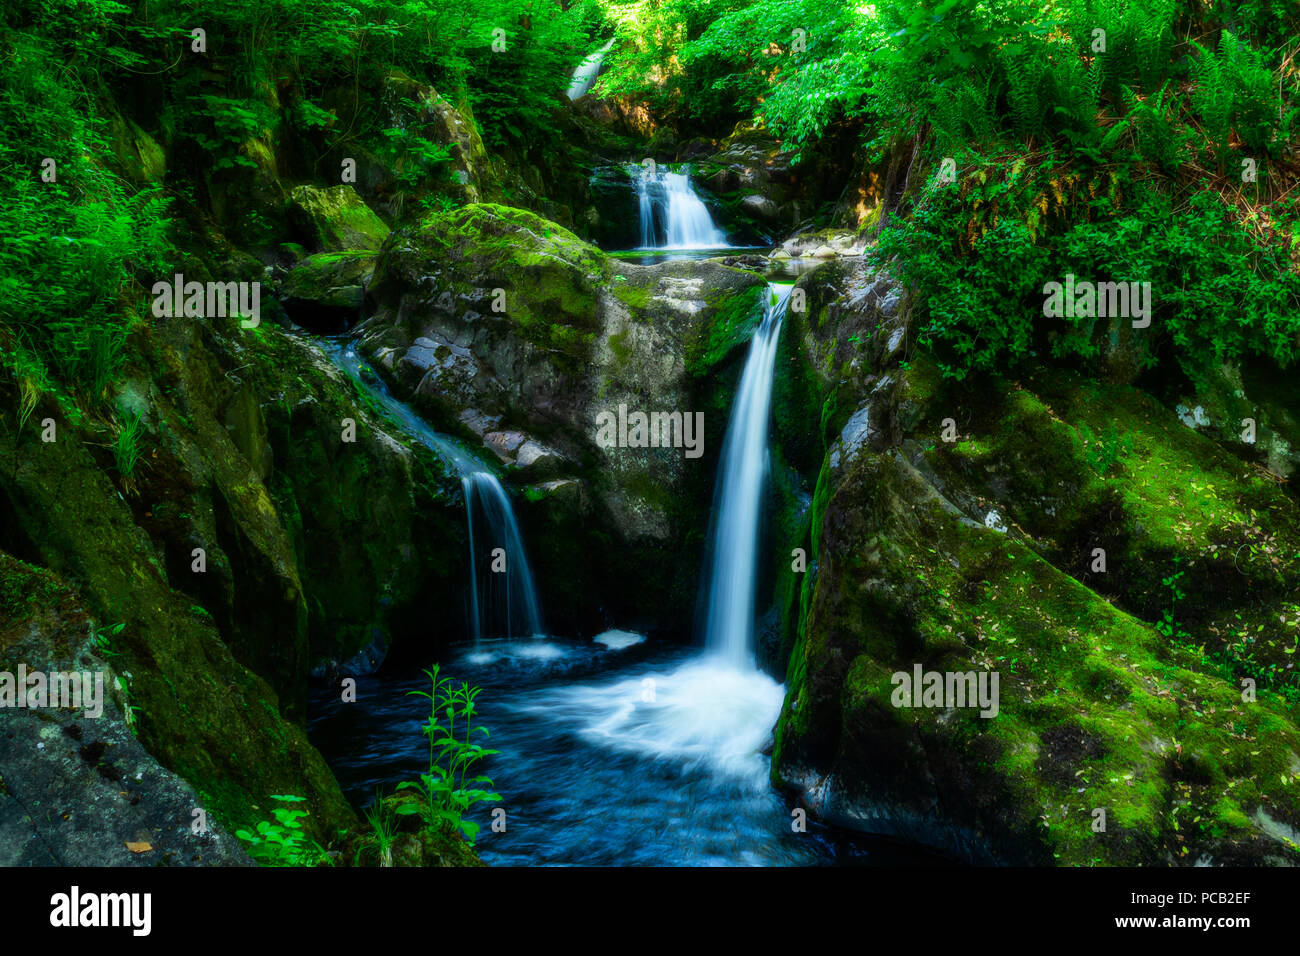 Ingleton waterfalls, Yorkshire Dales National Park - Stock Image